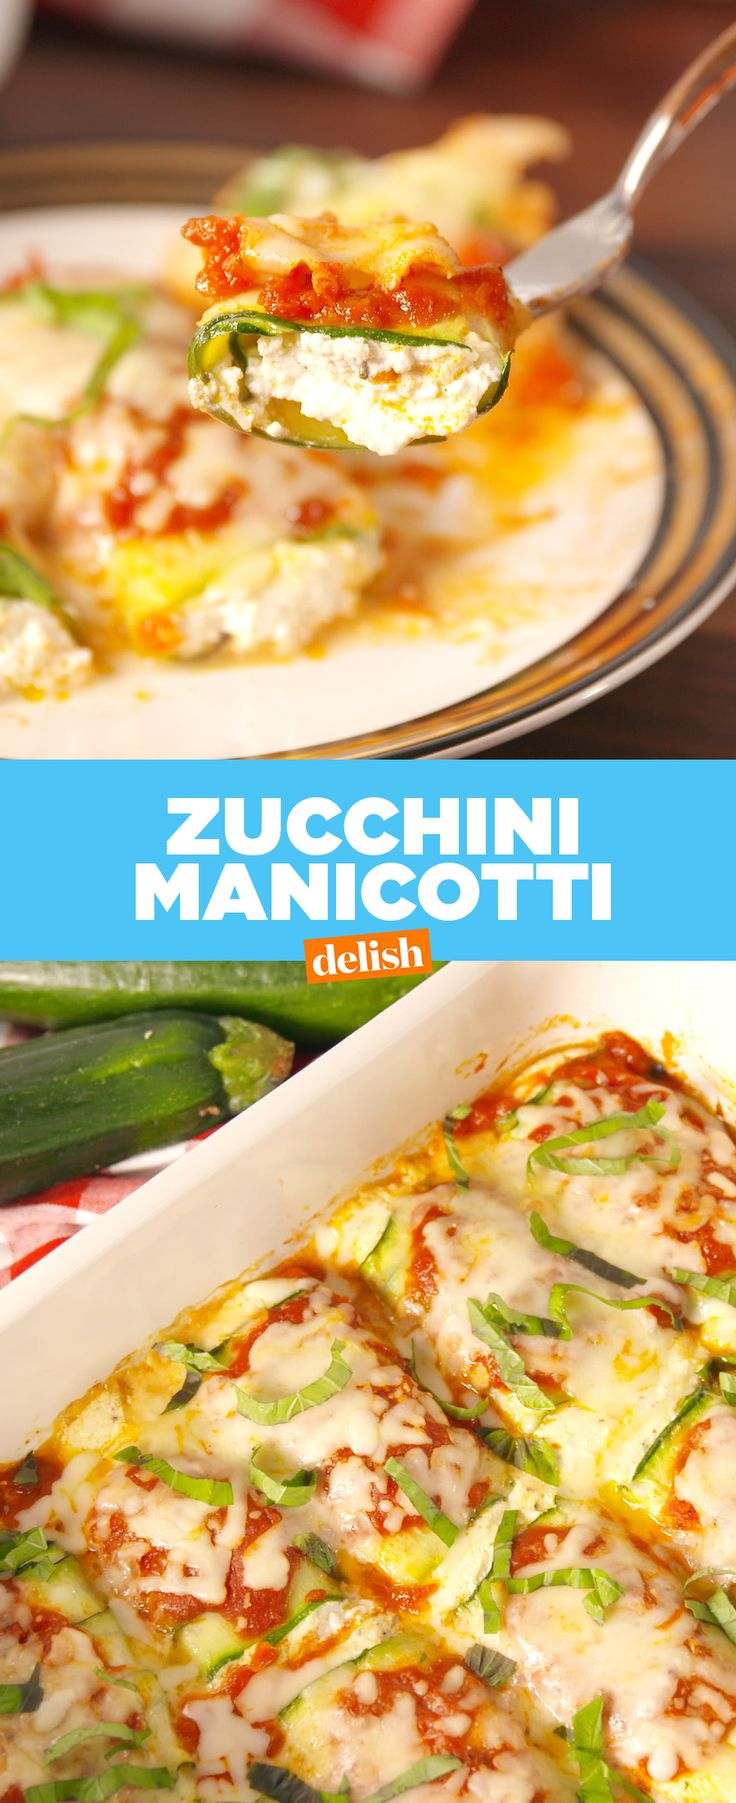 Zucchini Manicotti is the low-carb dinner you'll actually want to eat. Get the recipe at Delish.com